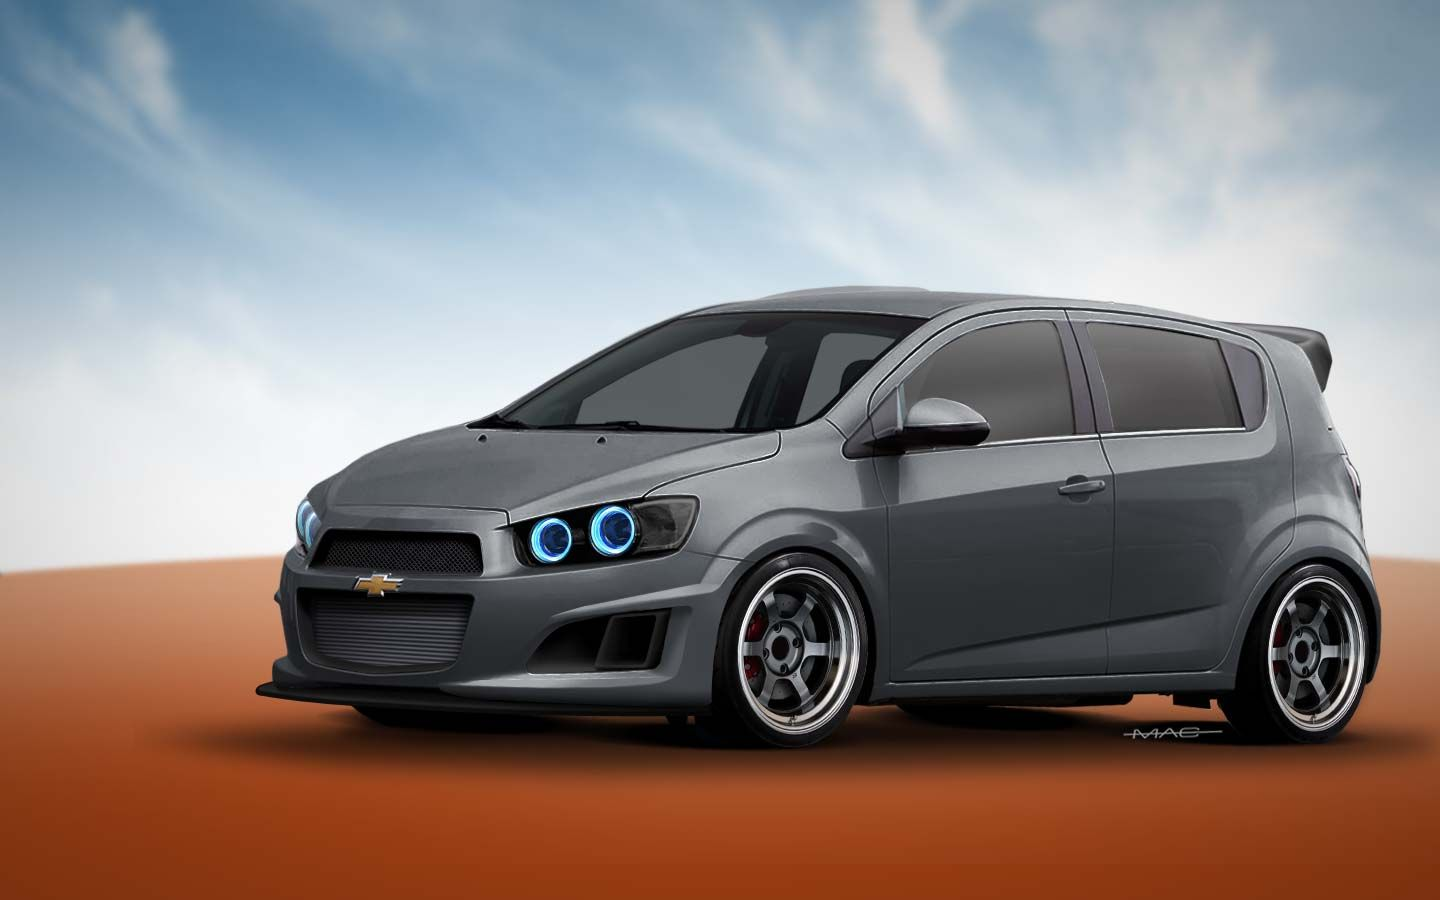 Custom 2012 Chevy Sonic Enthusiast Street Edition Chevy Sonic